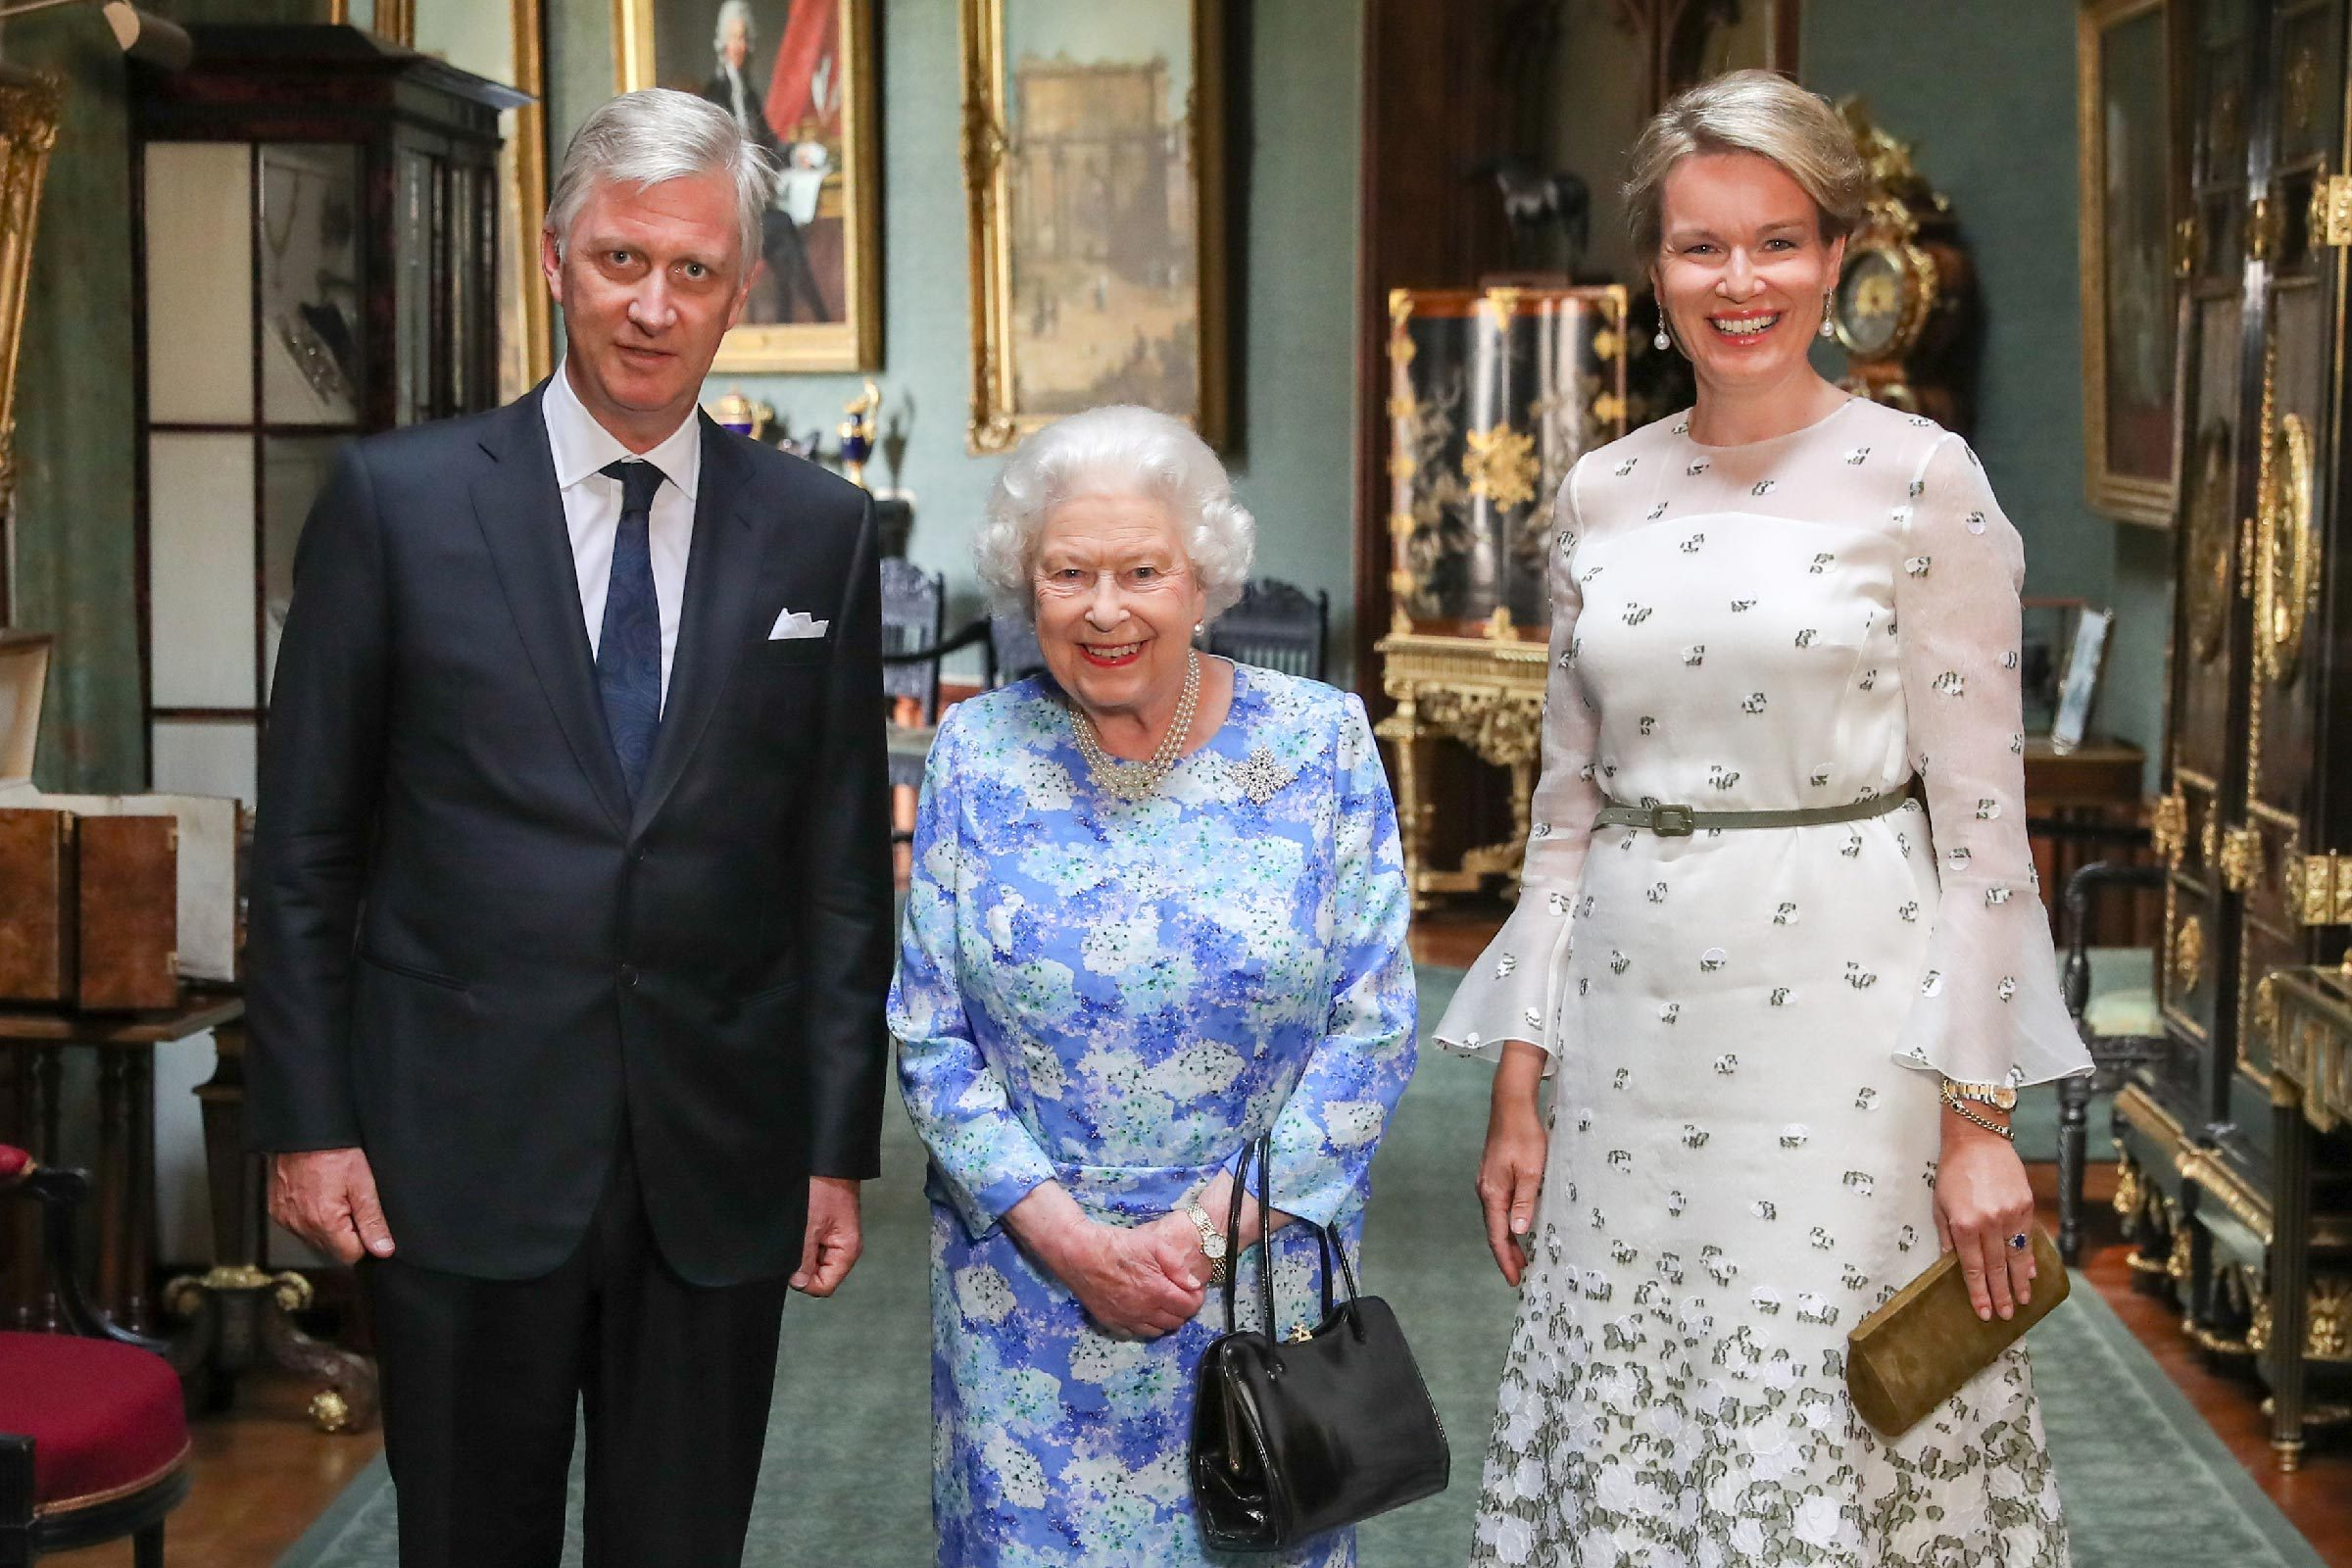 The secret signals the Queen sends her staff advise